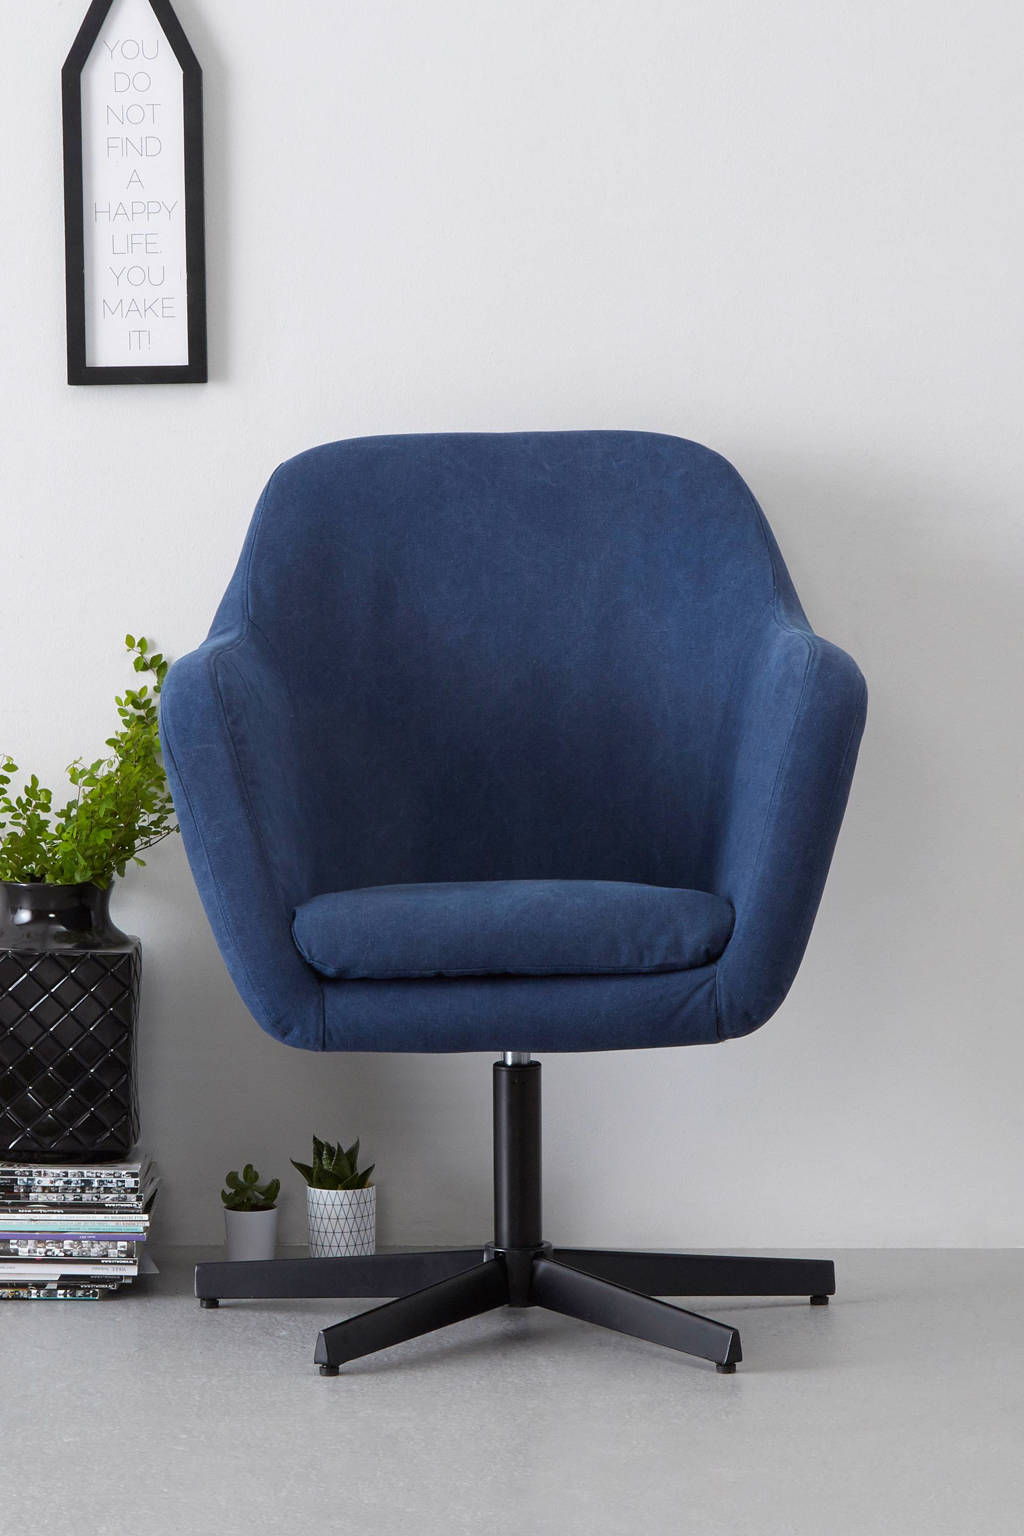 whkmp's own fauteuil Thron, Blauw